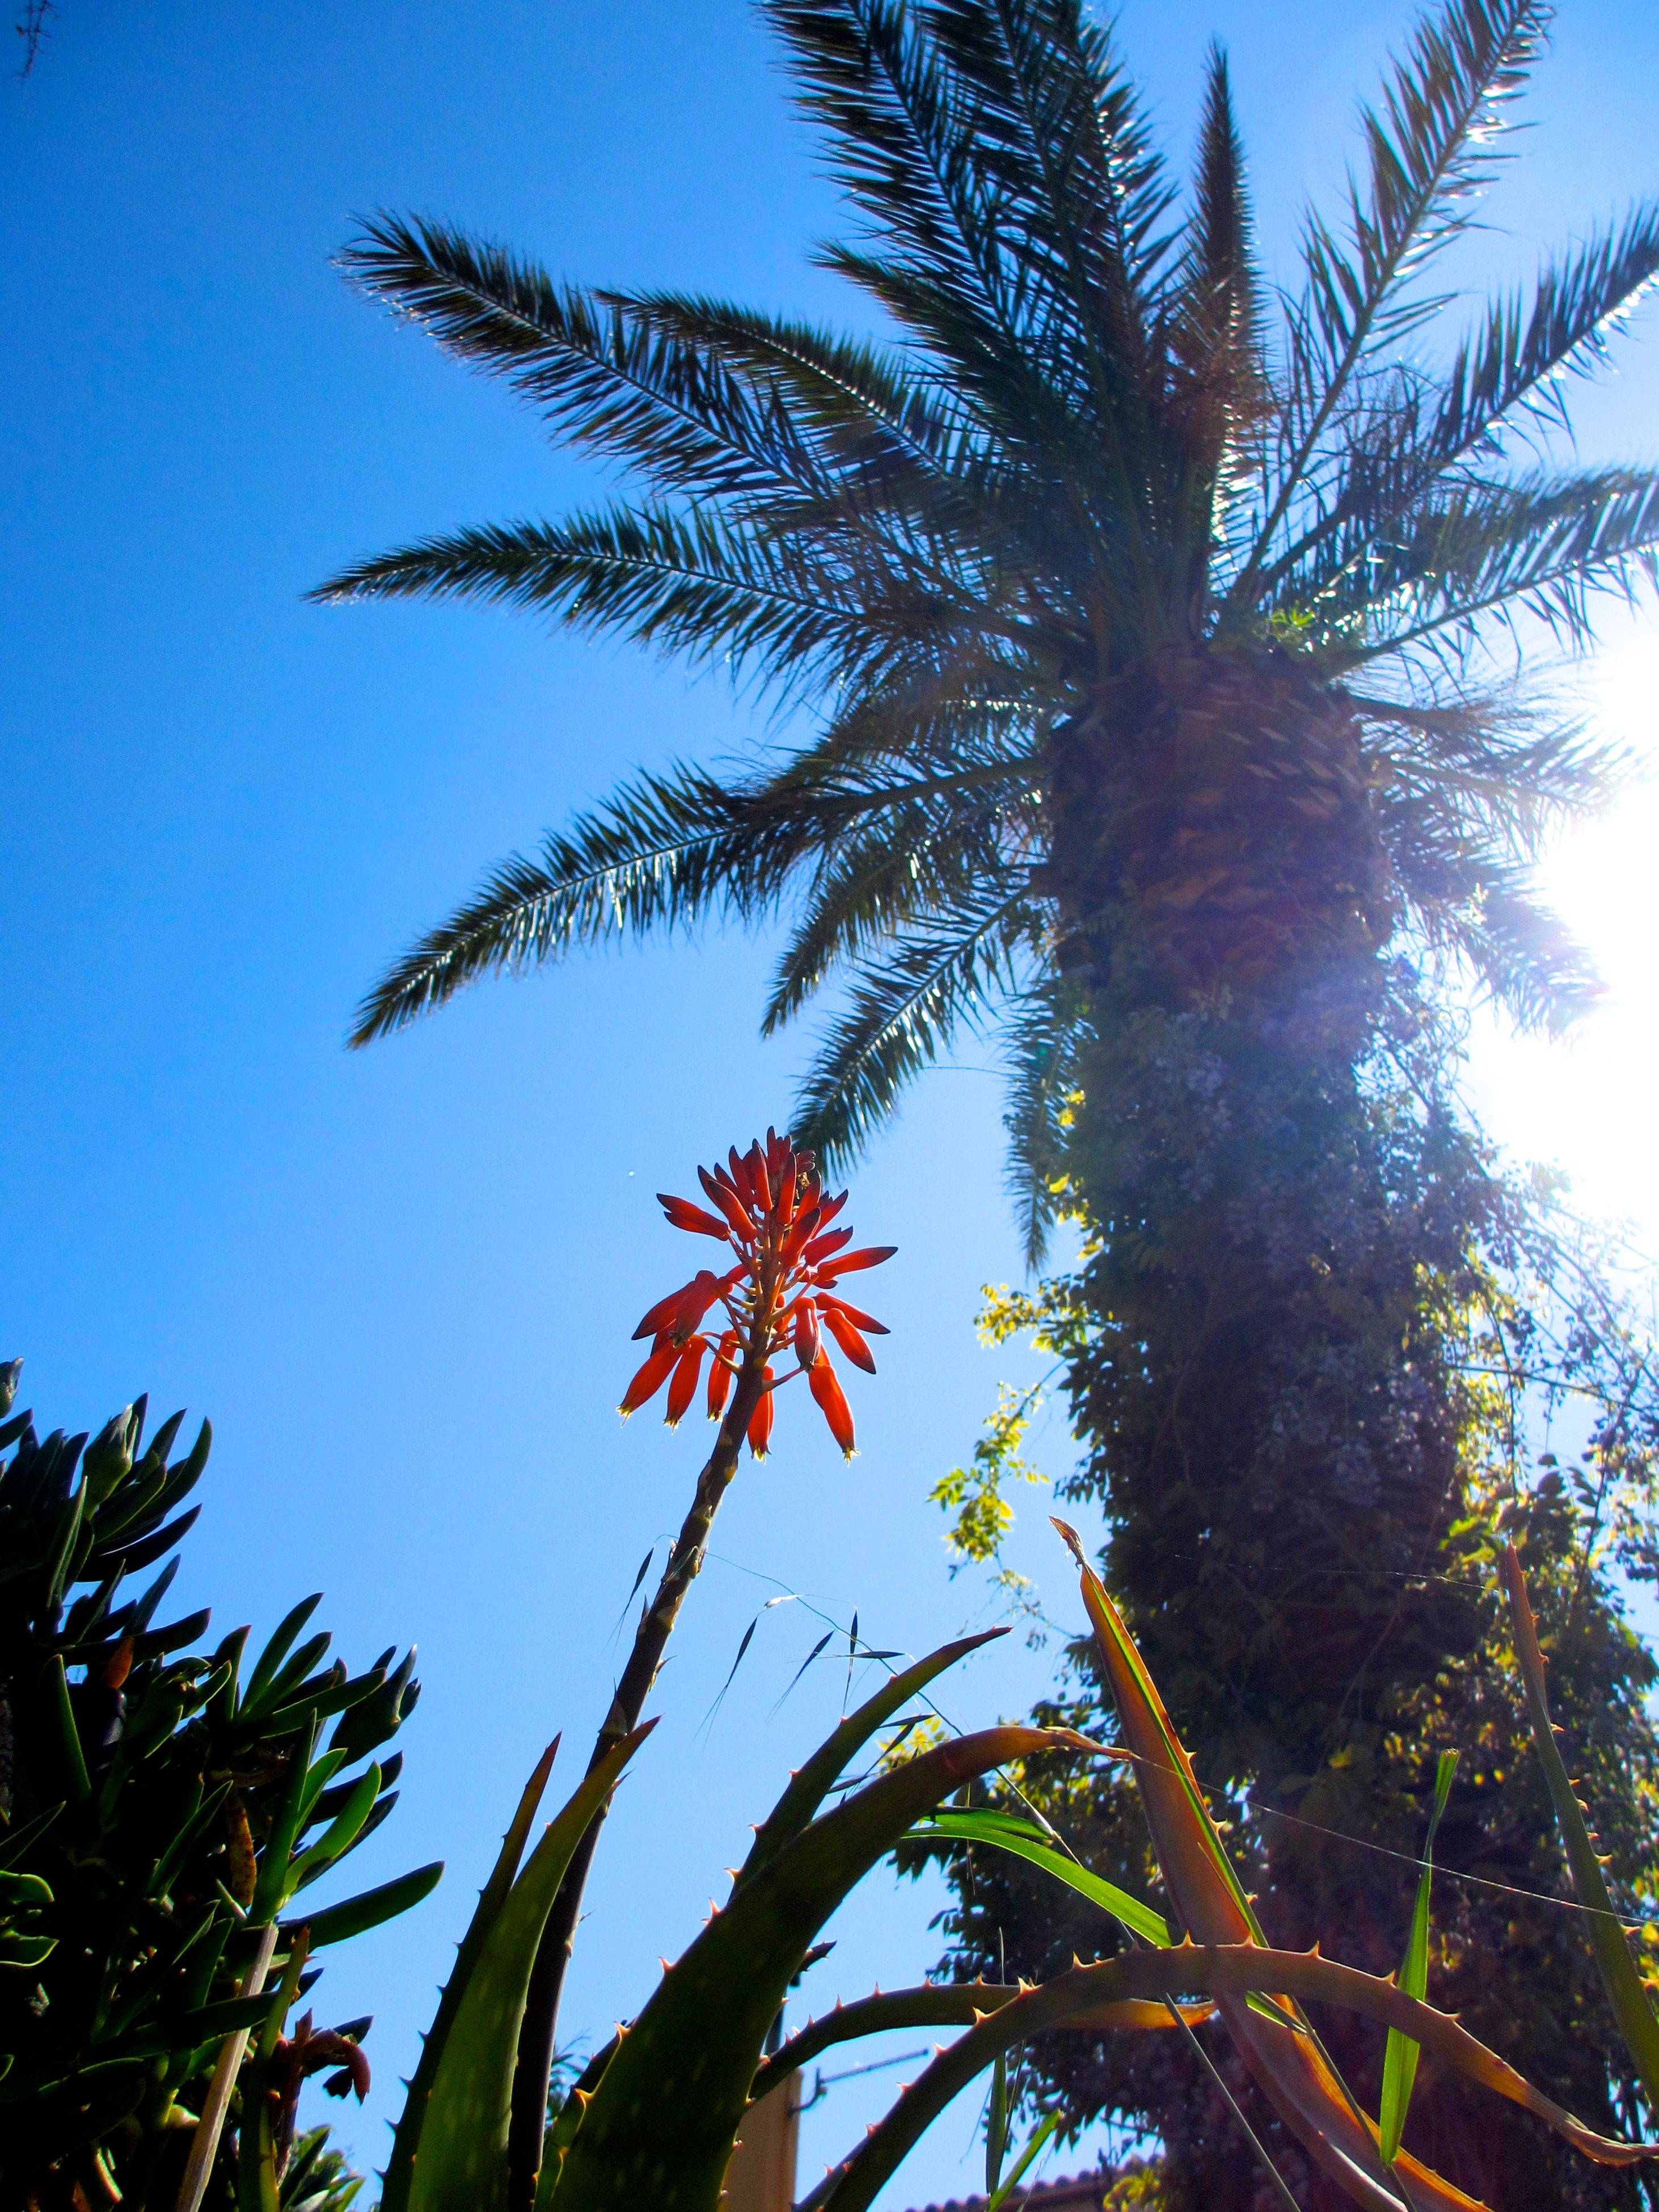 tree, low angle view, growth, nature, beauty in nature, no people, day, tranquility, palm tree, outdoors, sky, clear sky, freshness, close-up